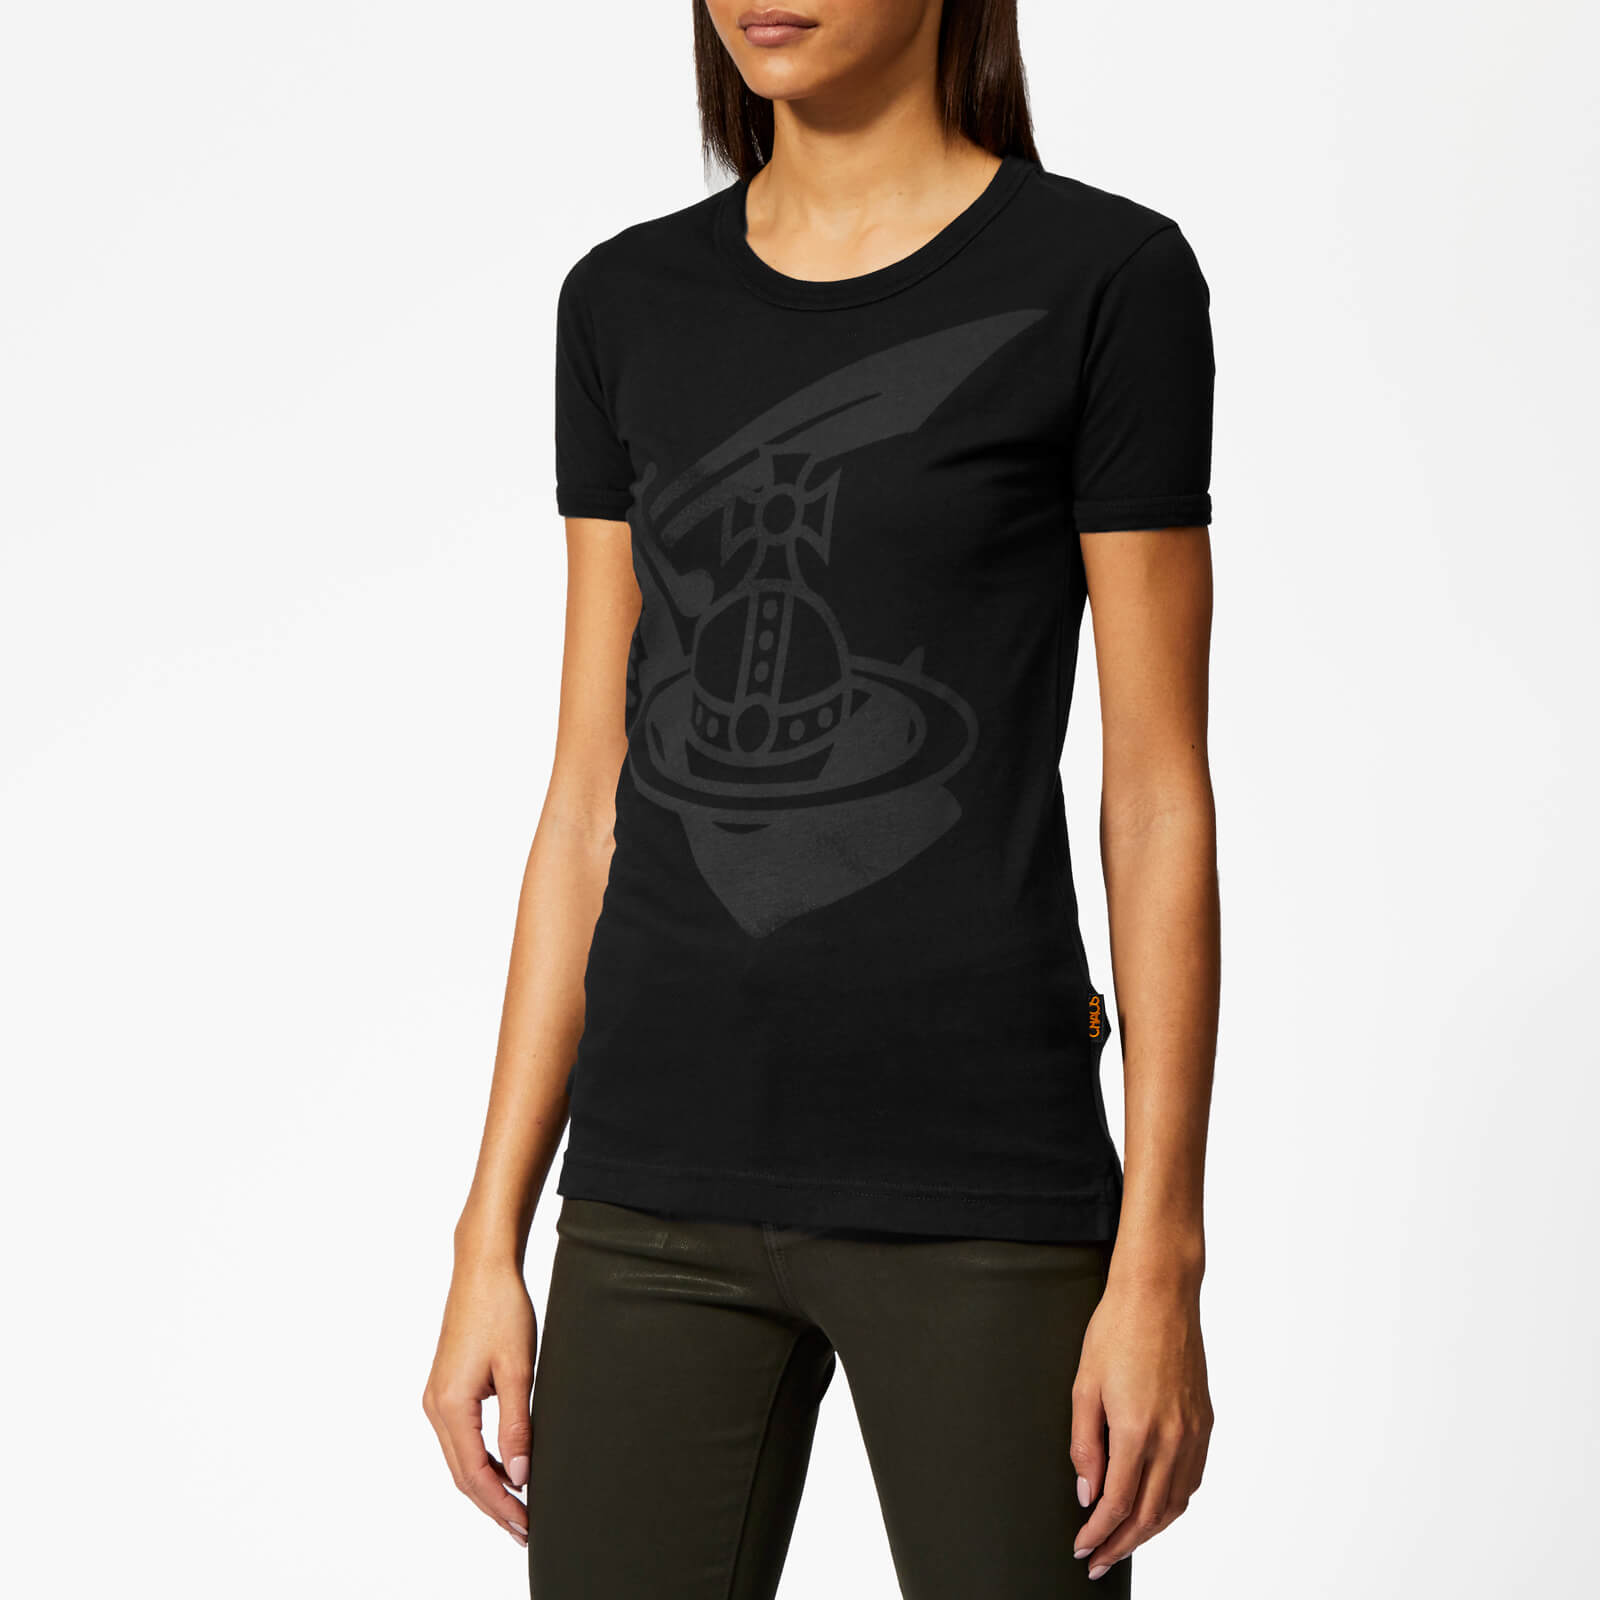 ffab1151993ec Vivienne Westwood Anglomania Women s Classic T-Shirt - Black - Free UK  Delivery over £50